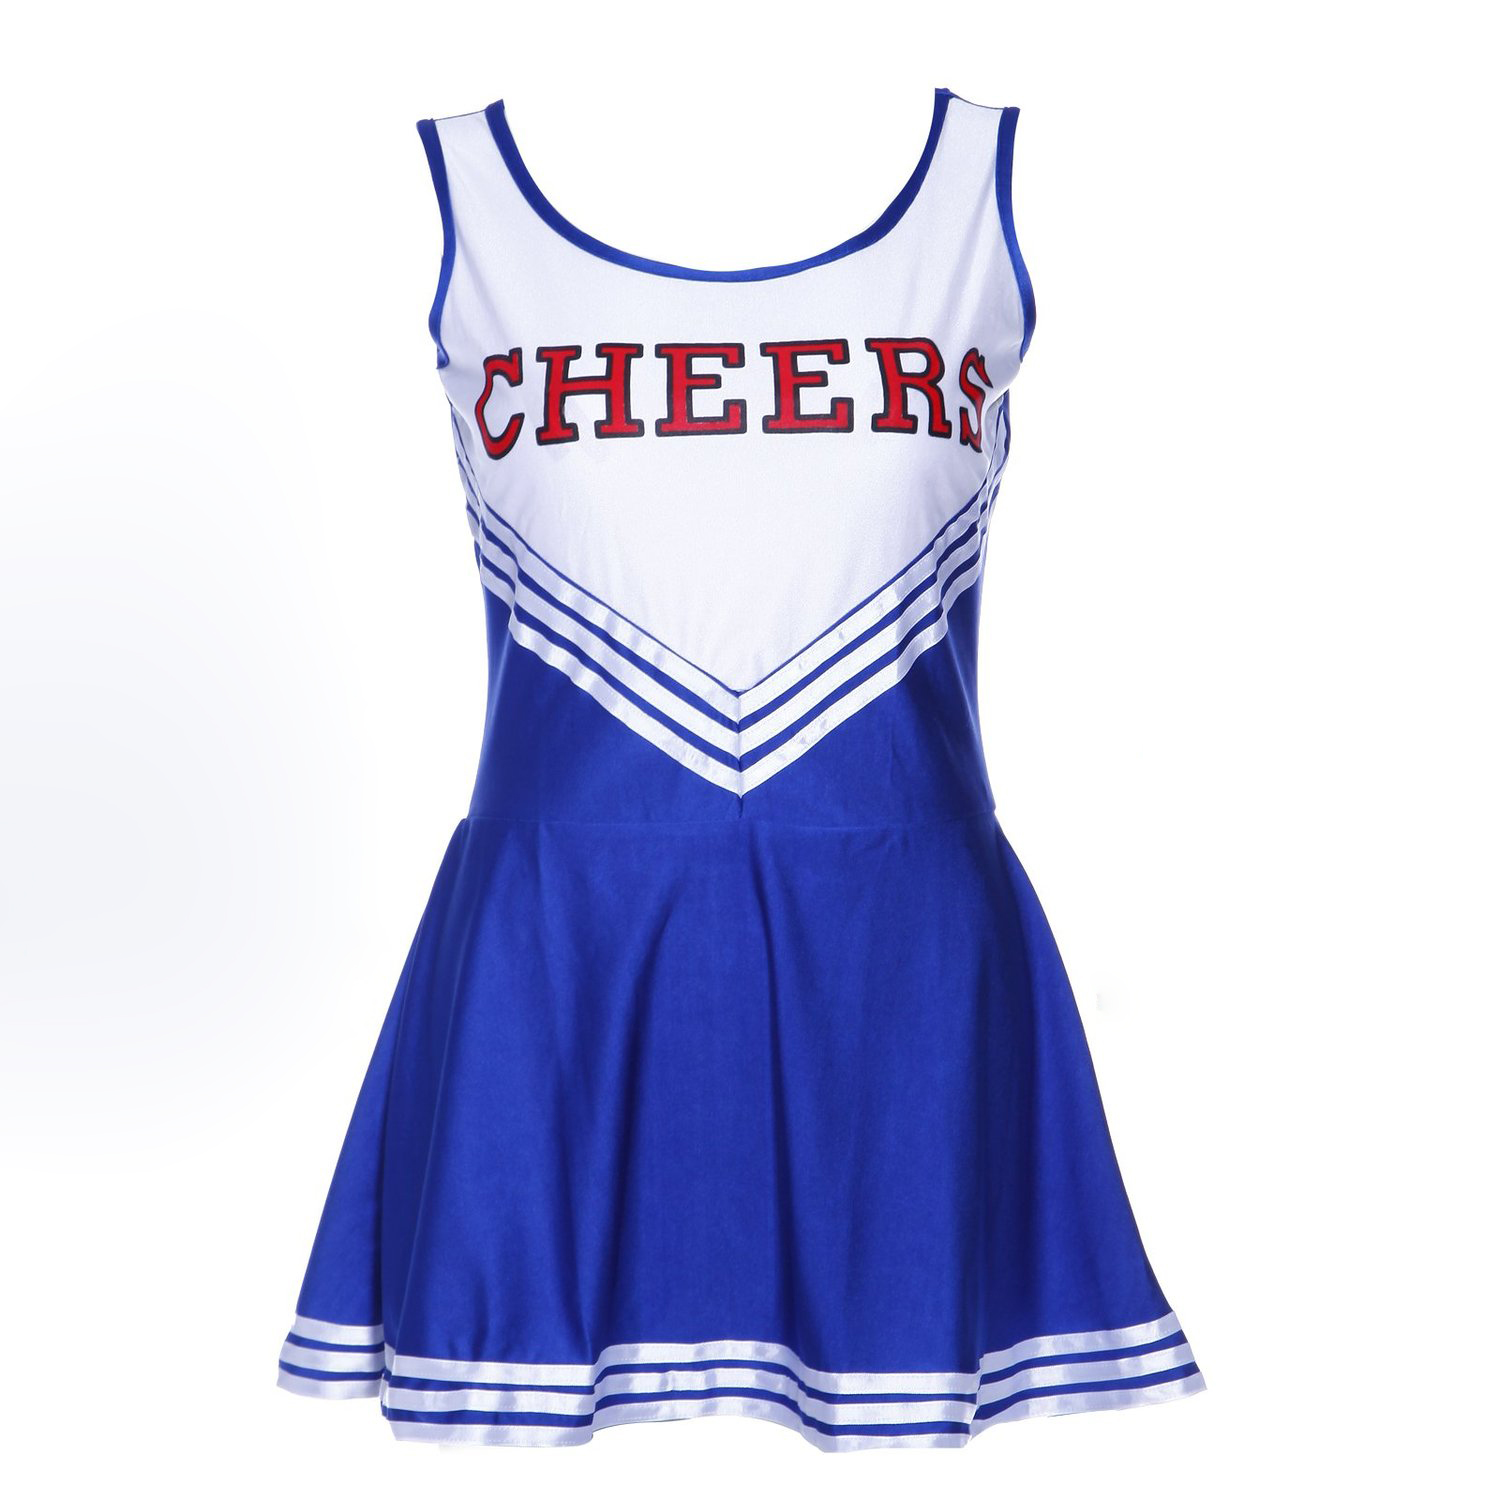 5pcs( Pom-pom girl tank top dress cheer leader blue suit costume XL (42-44) school football